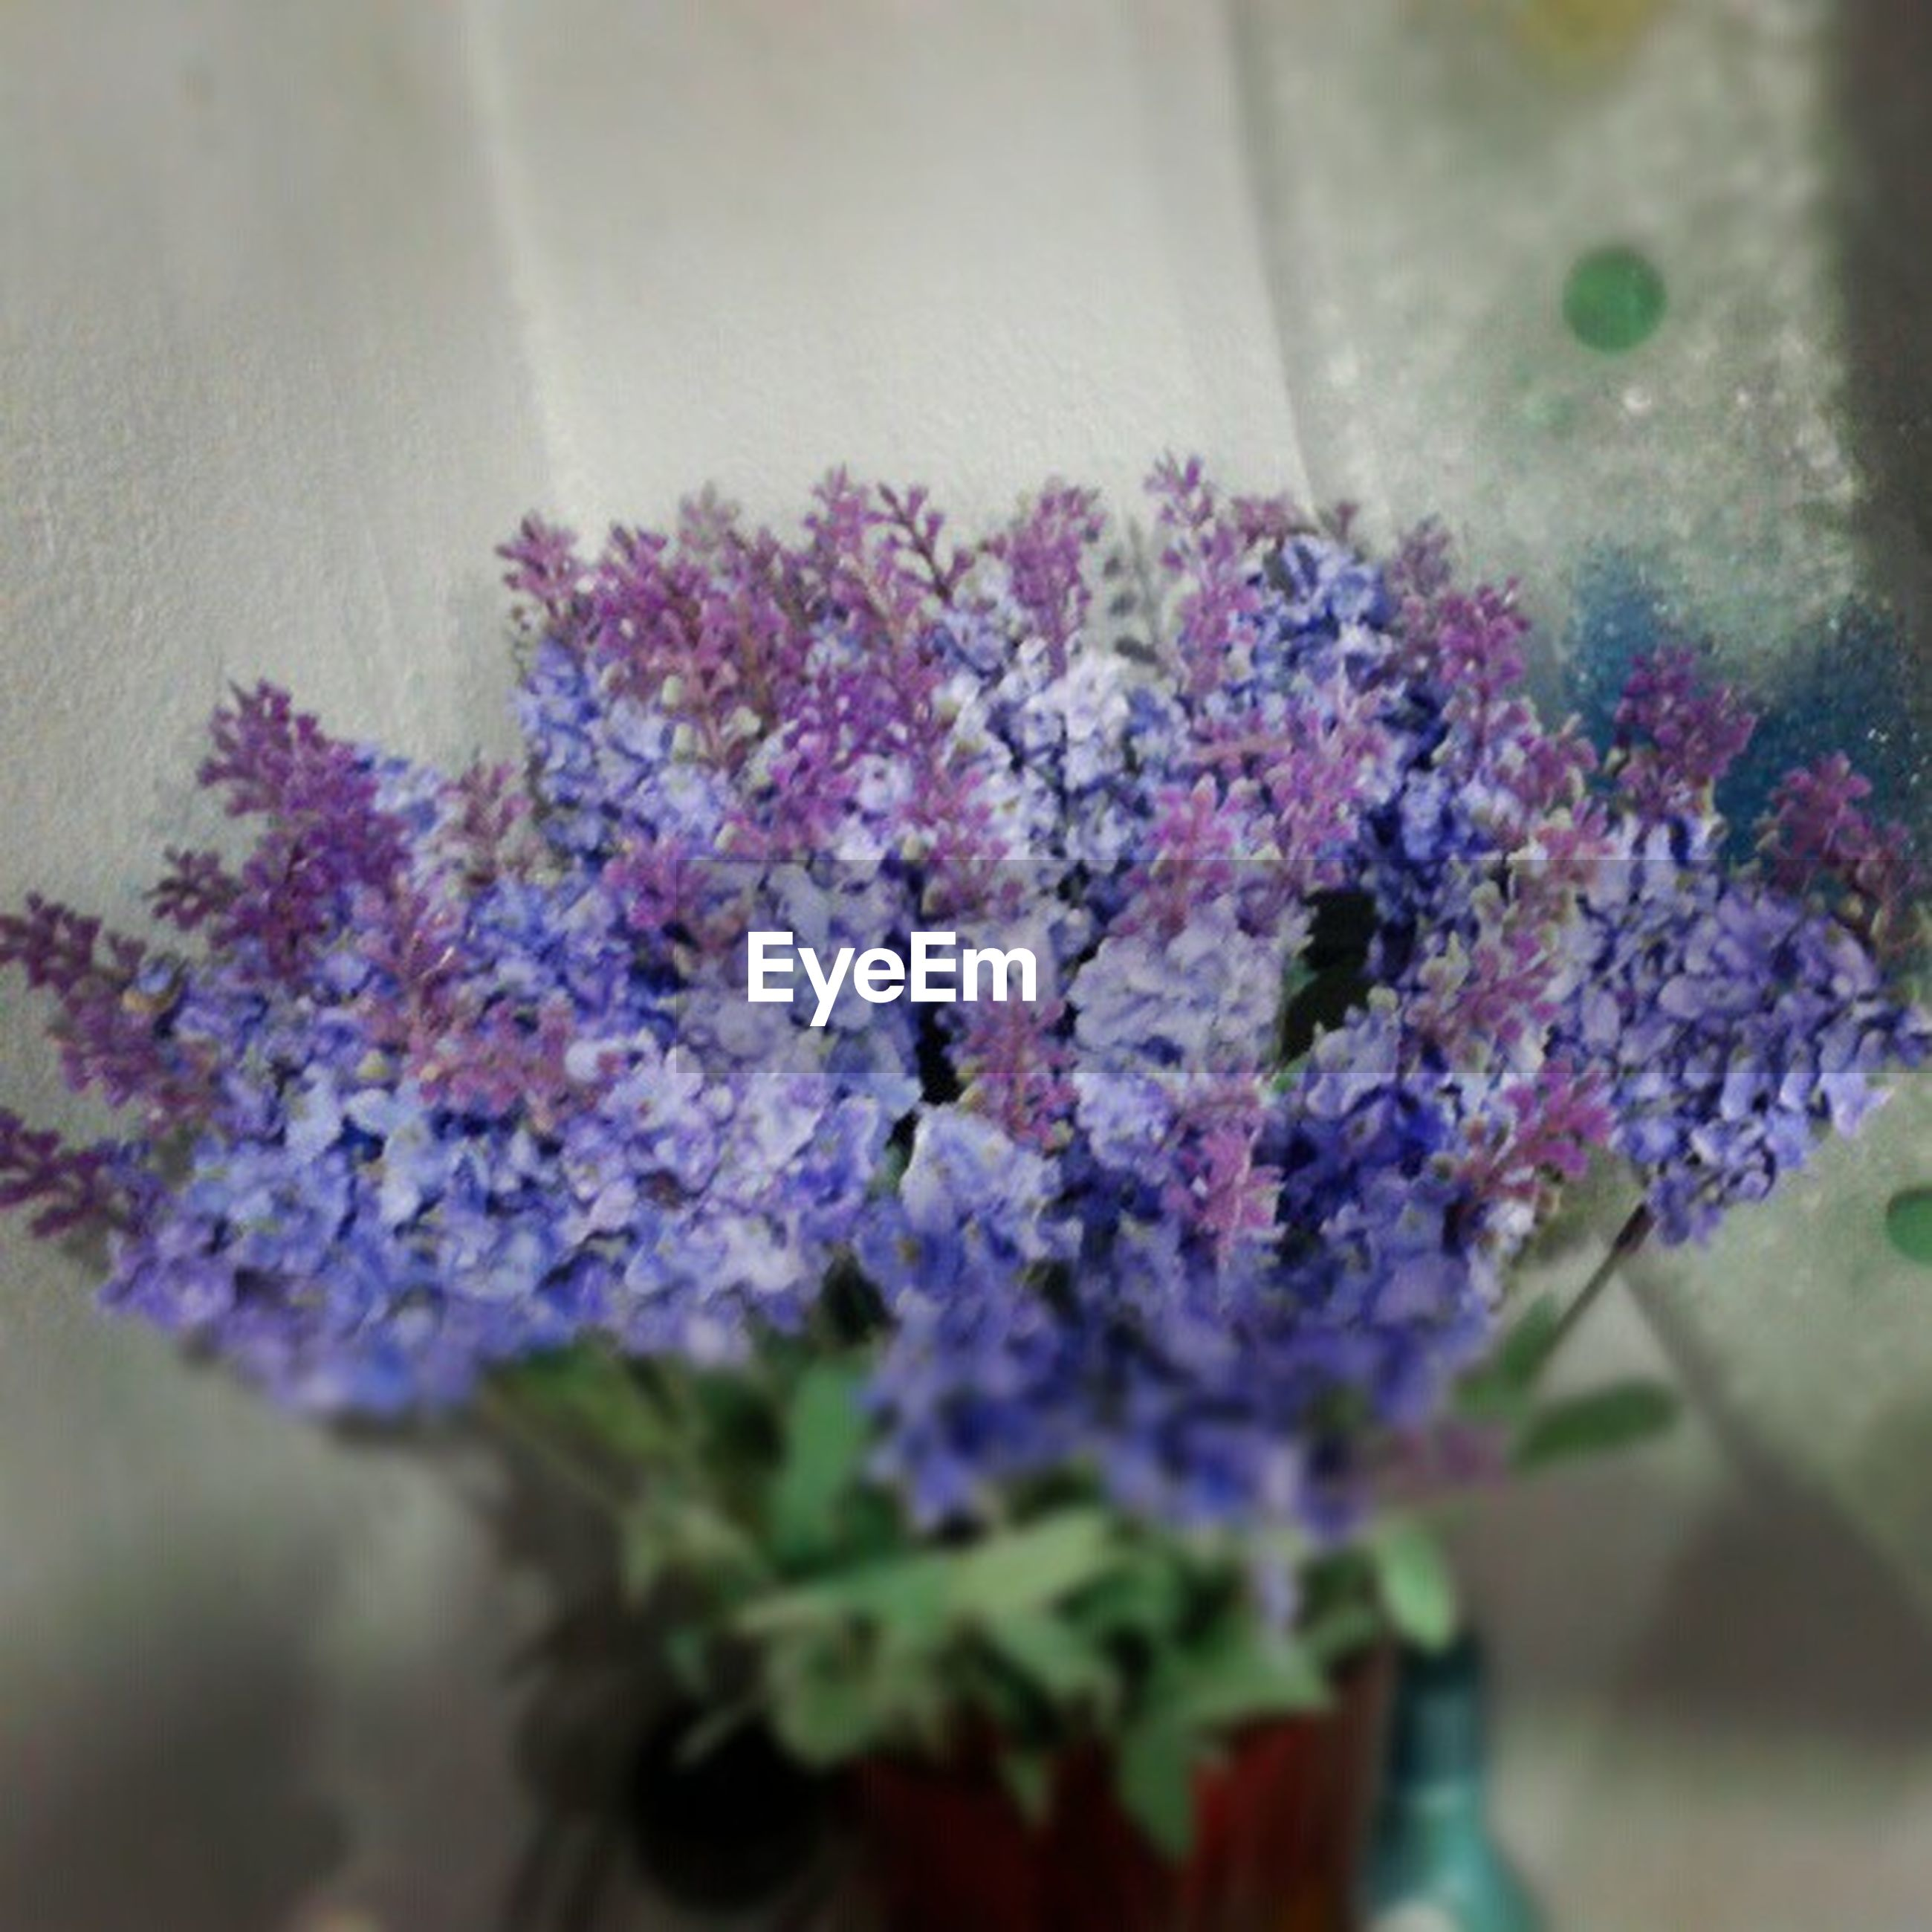 flower, fragility, freshness, growth, purple, plant, close-up, selective focus, beauty in nature, petal, nature, focus on foreground, blooming, flower head, in bloom, bunch of flowers, indoors, potted plant, botany, no people